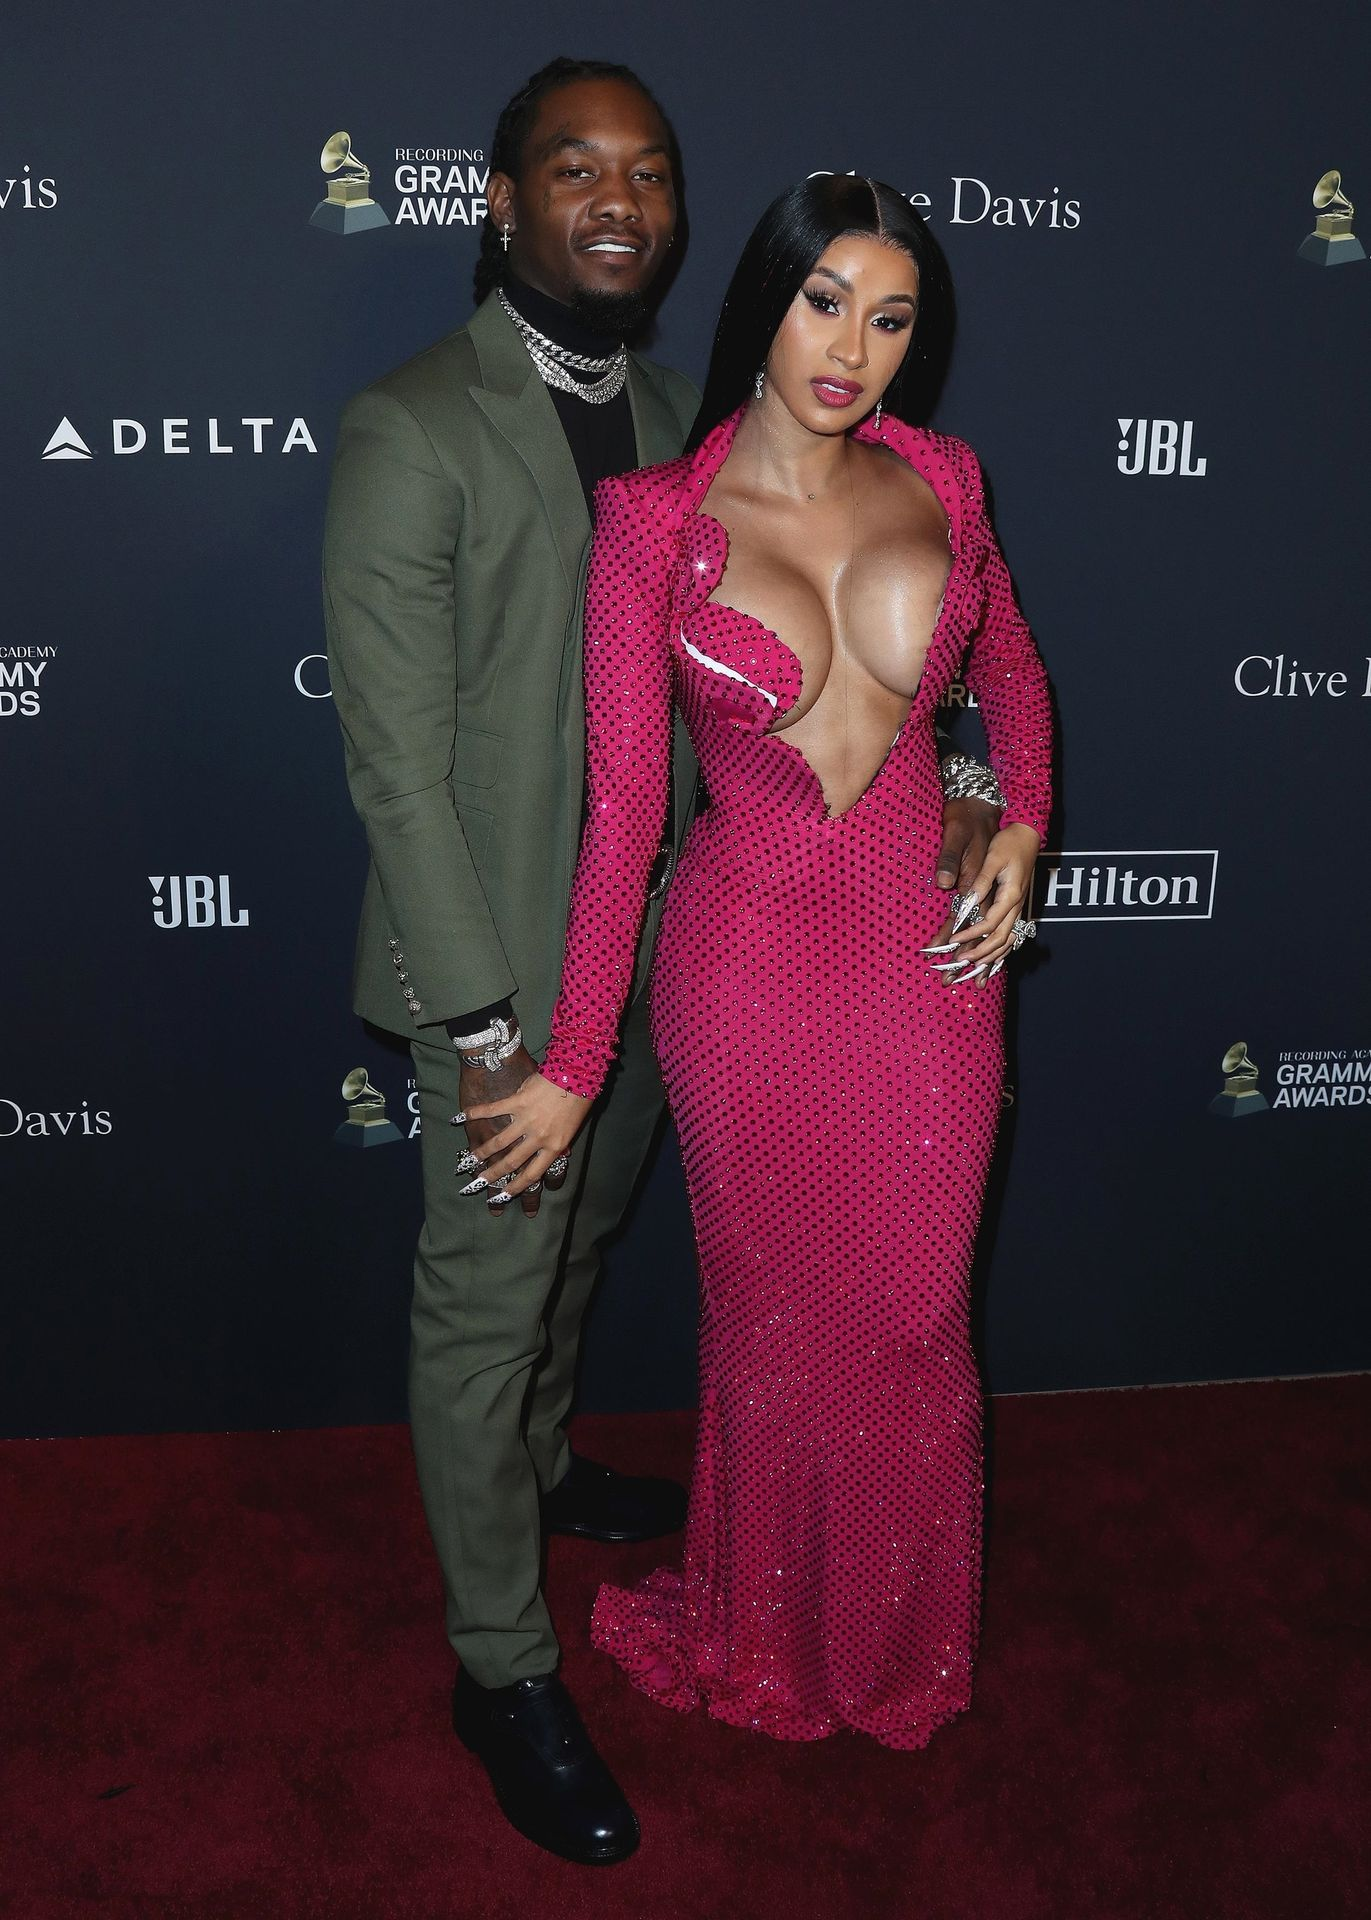 Offset Covers Cardi B's Boobs To Avoid Wardrobe Malfunction At Clive Davis Pre Grammy Party 0035